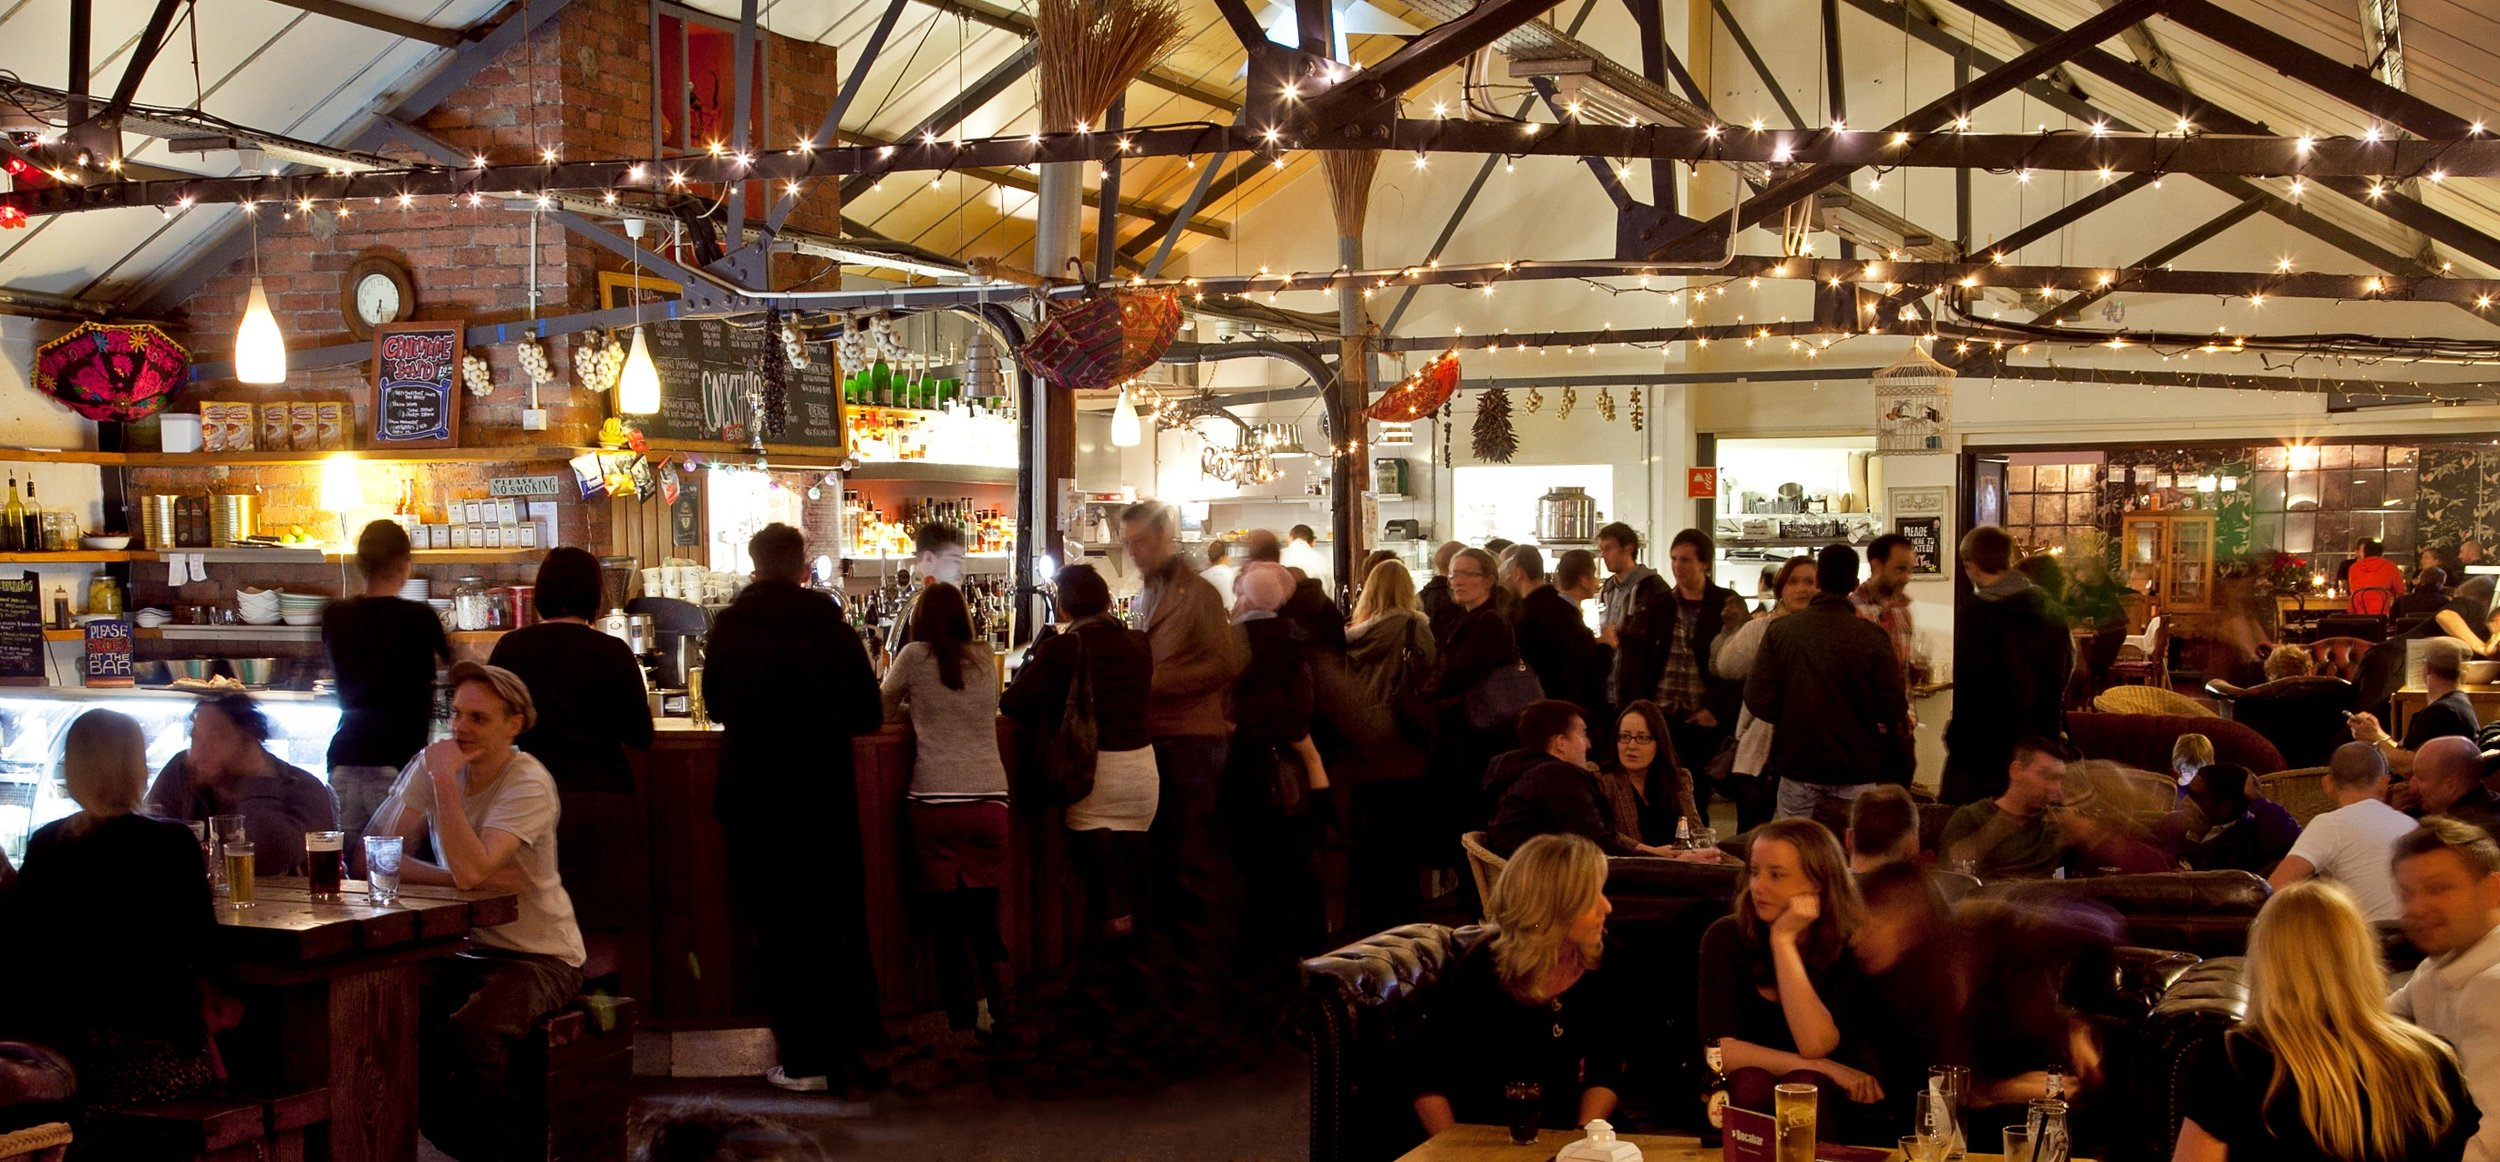 Bocabar lends itself to being a bustling festive honey pot for those seeking lovingly presented drinks and food. A relaxed, hip venue to enjoy some music and maybe dabble in some occasional dancing.